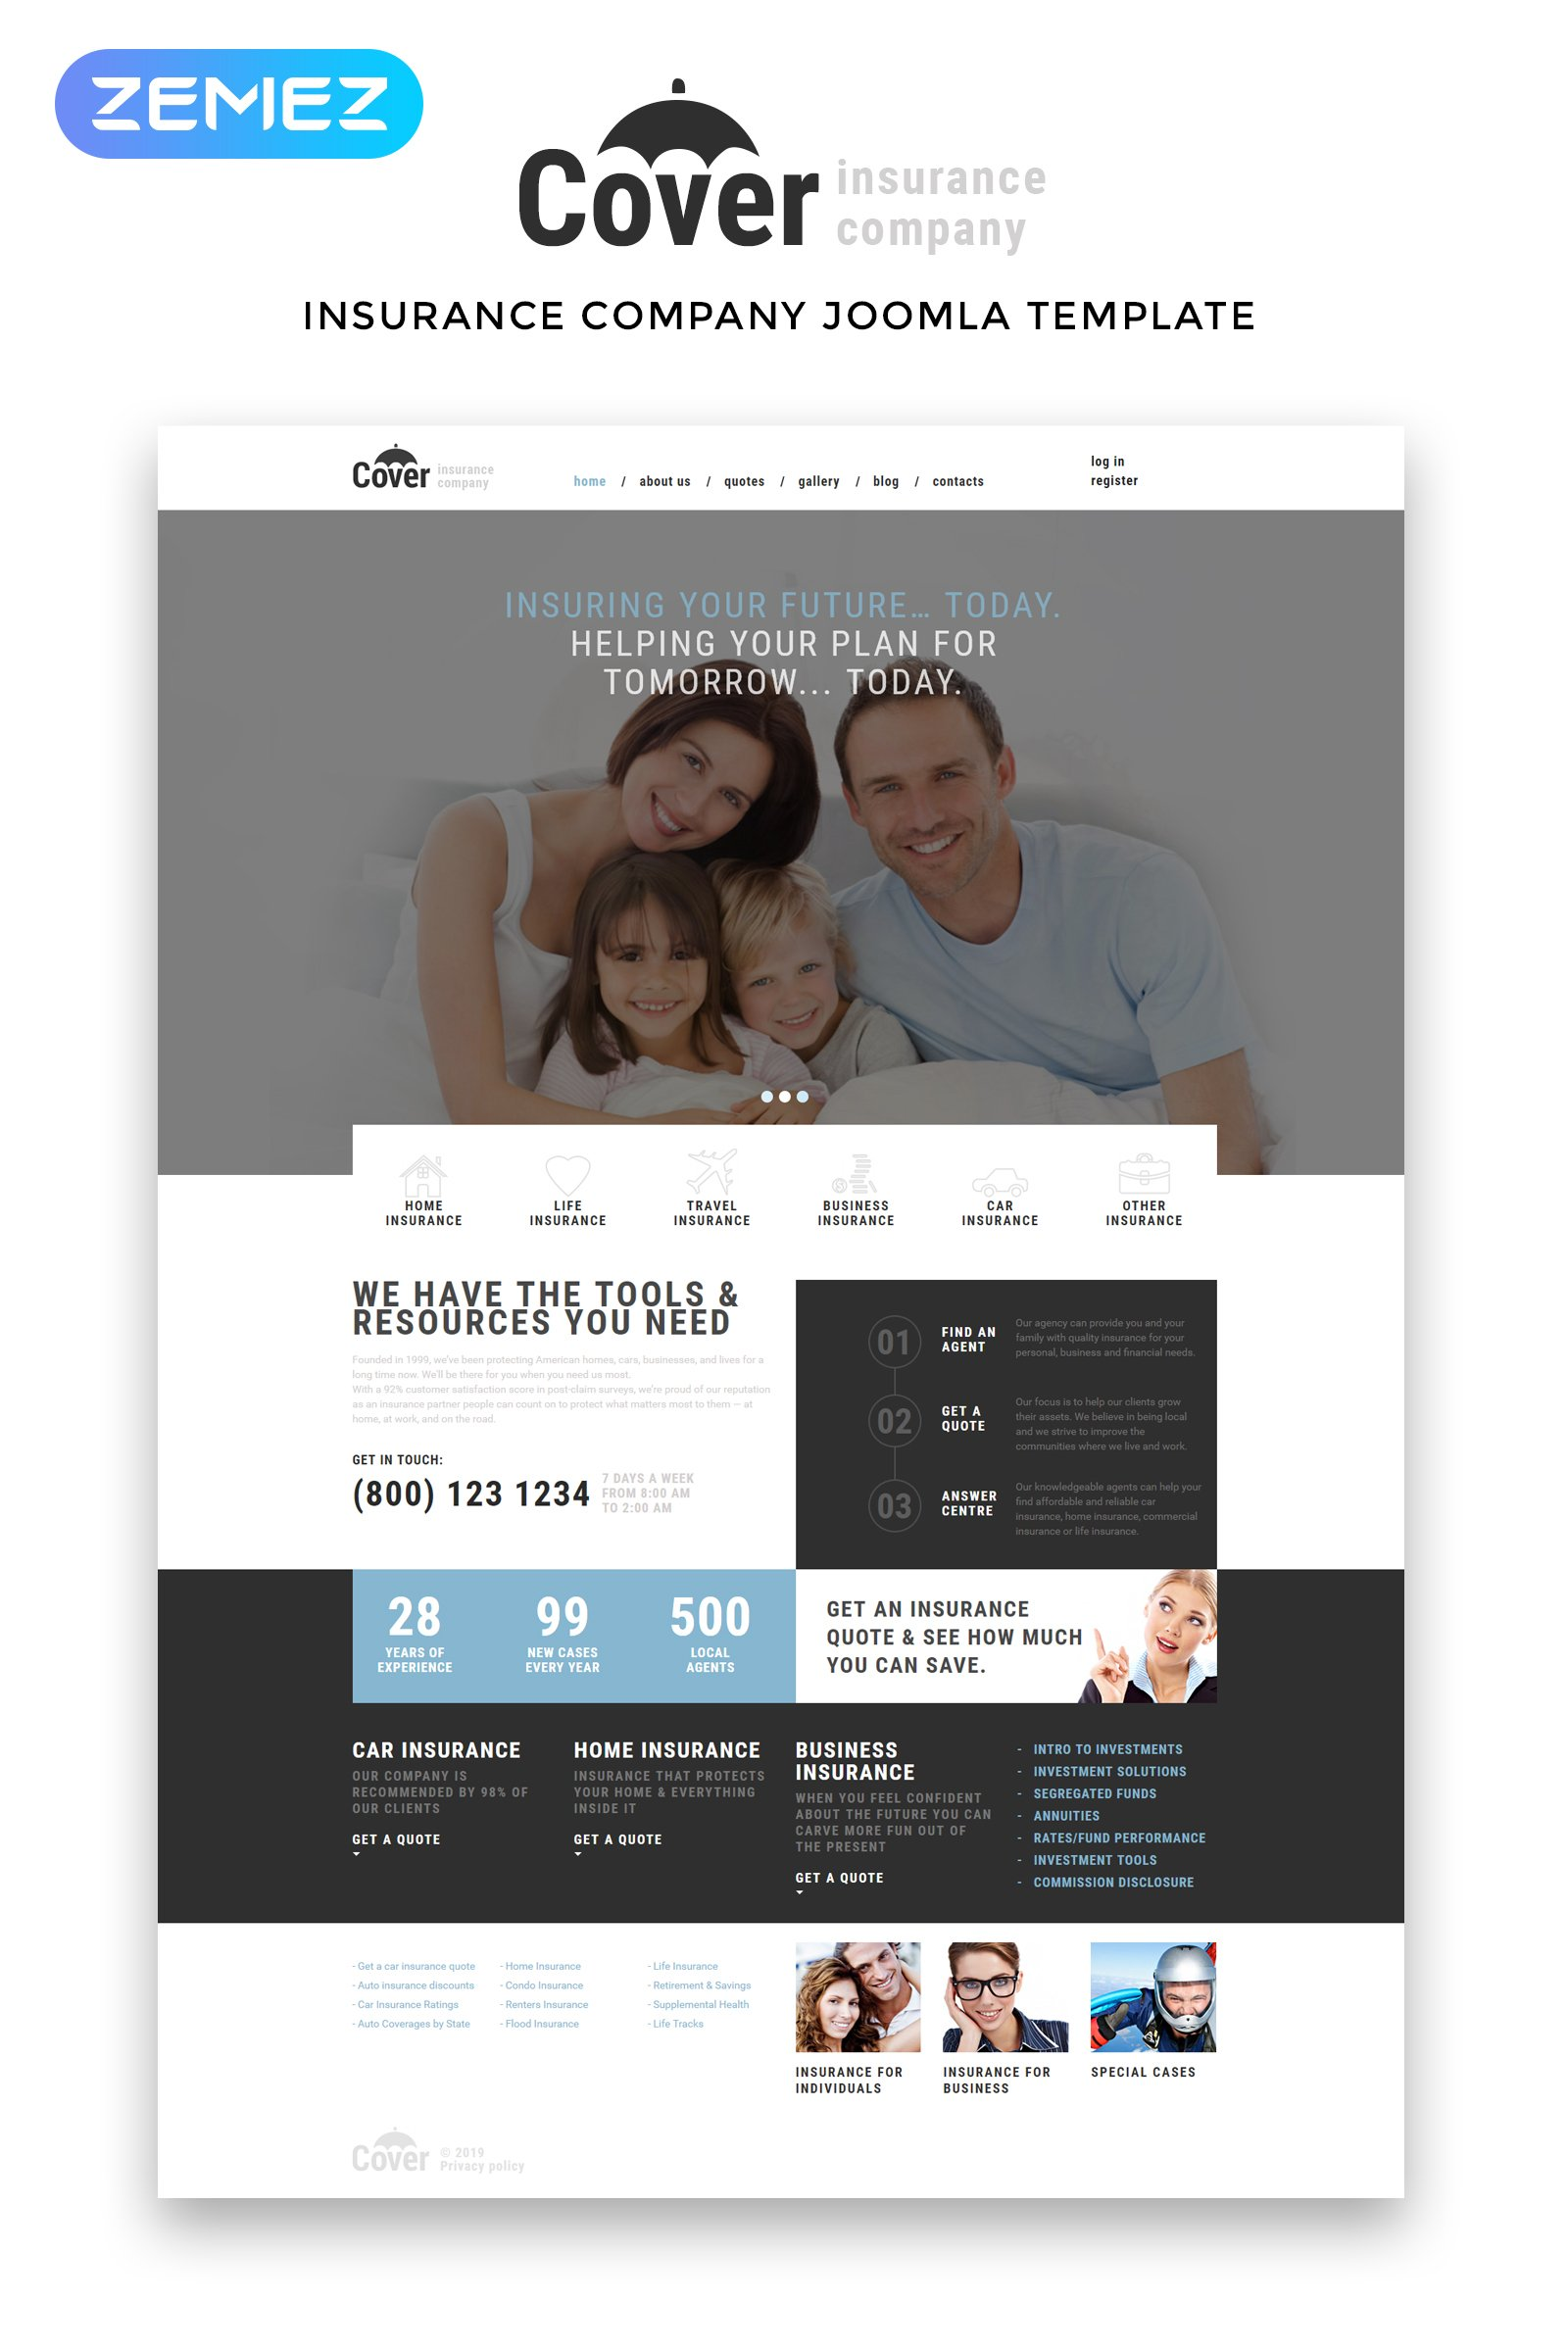 Cover - Insurance Company Multipage Template Joomla №50996 - captura de tela